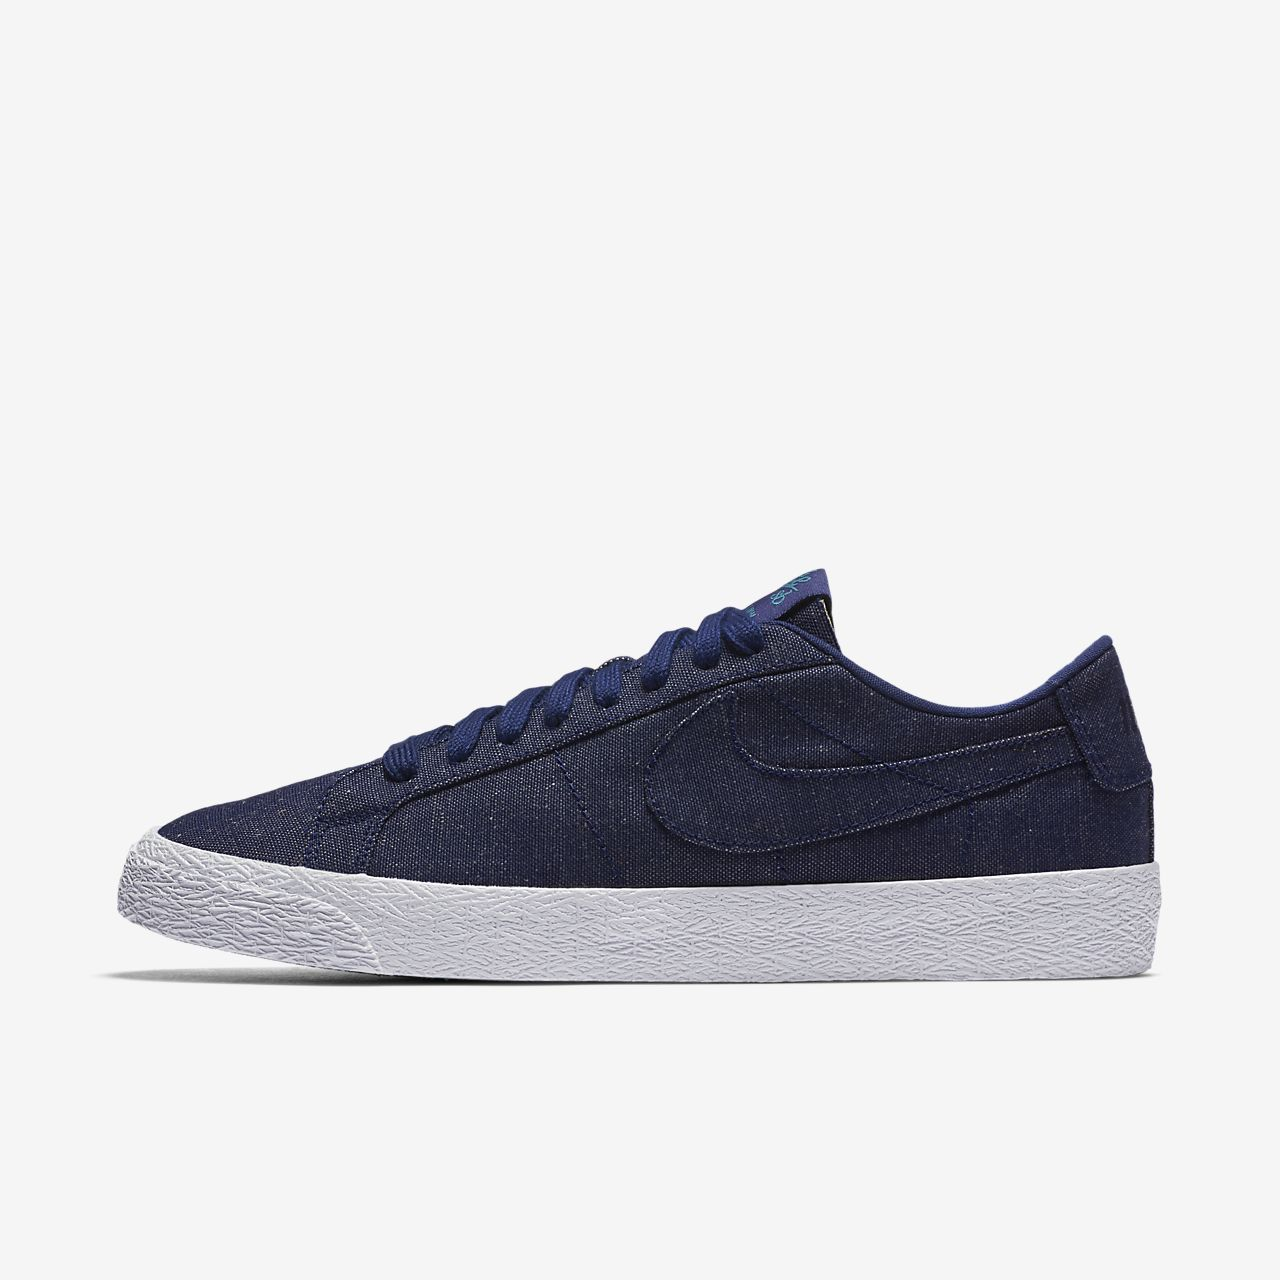 best authentic 7fea1 c4b35 Men s Skateboarding Shoe. Nike SB Zoom Blazer Low Canvas Deconstructed